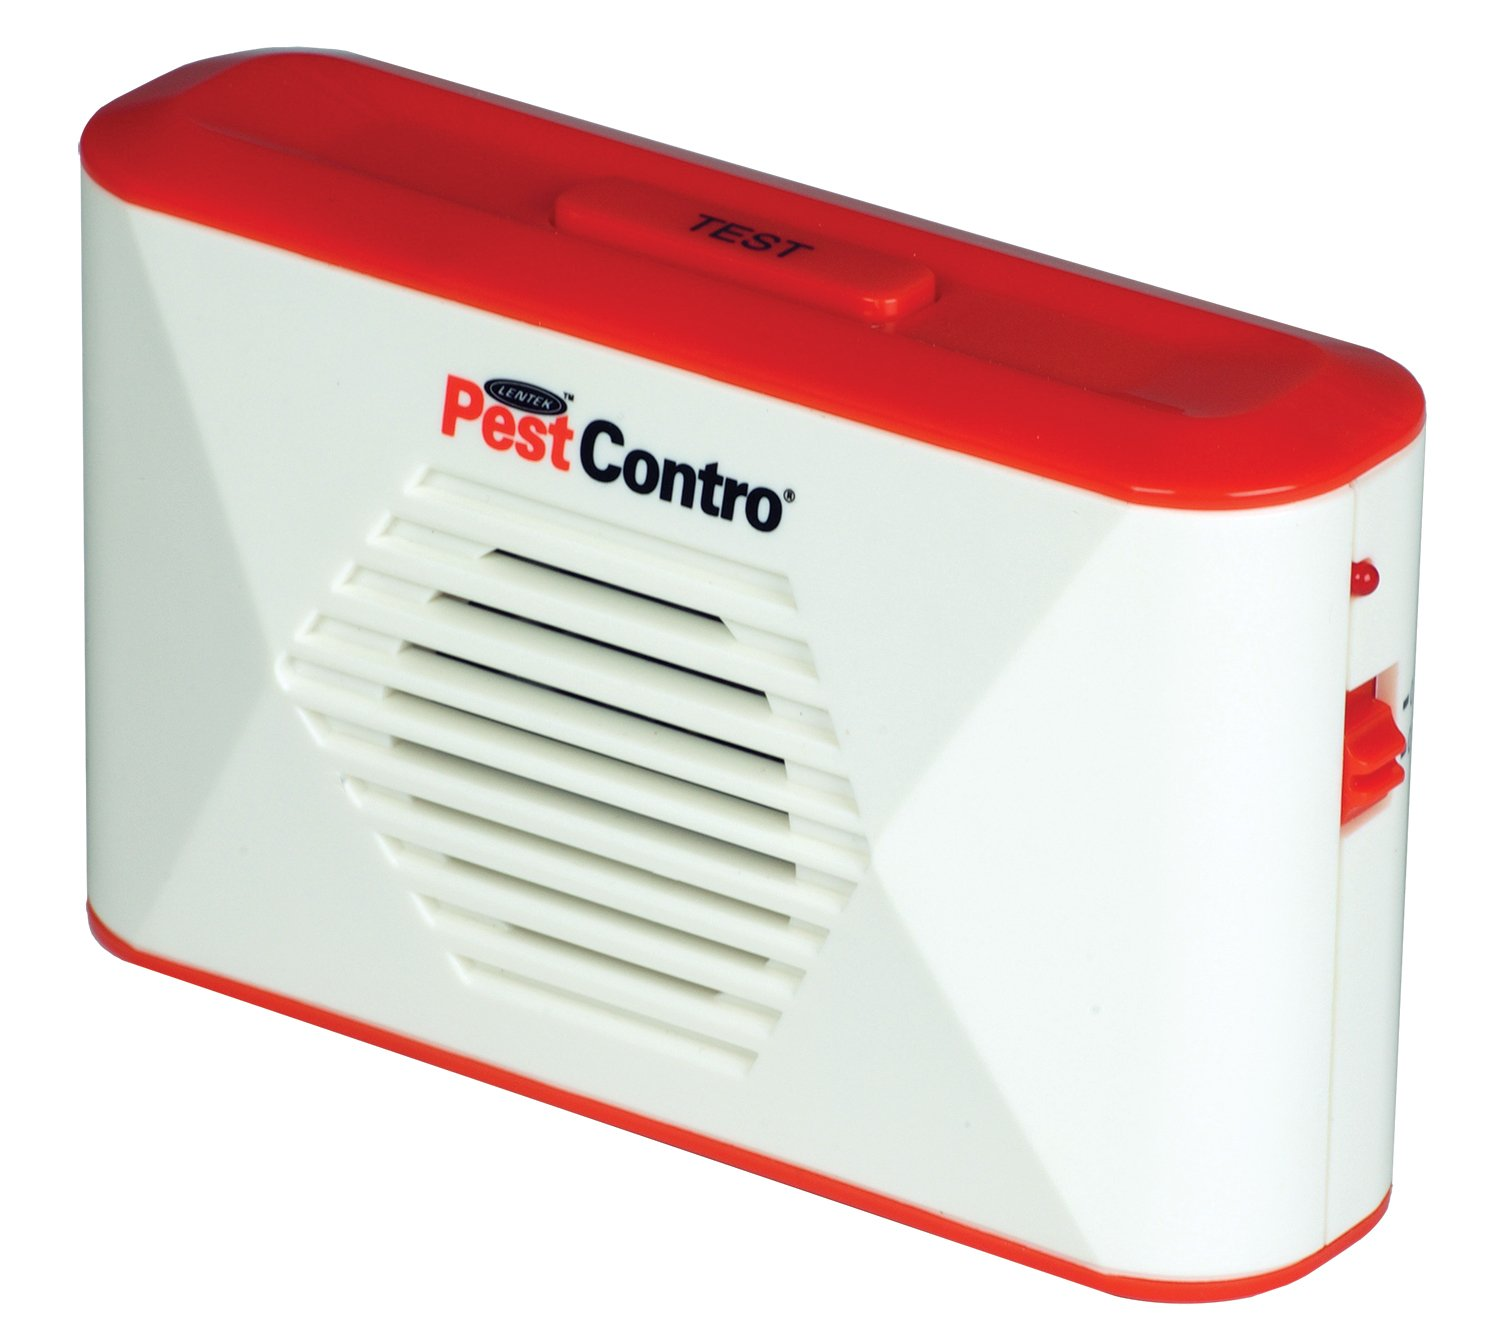 Pest Contro PR23 Battery Operated Repeller by Pest Contro